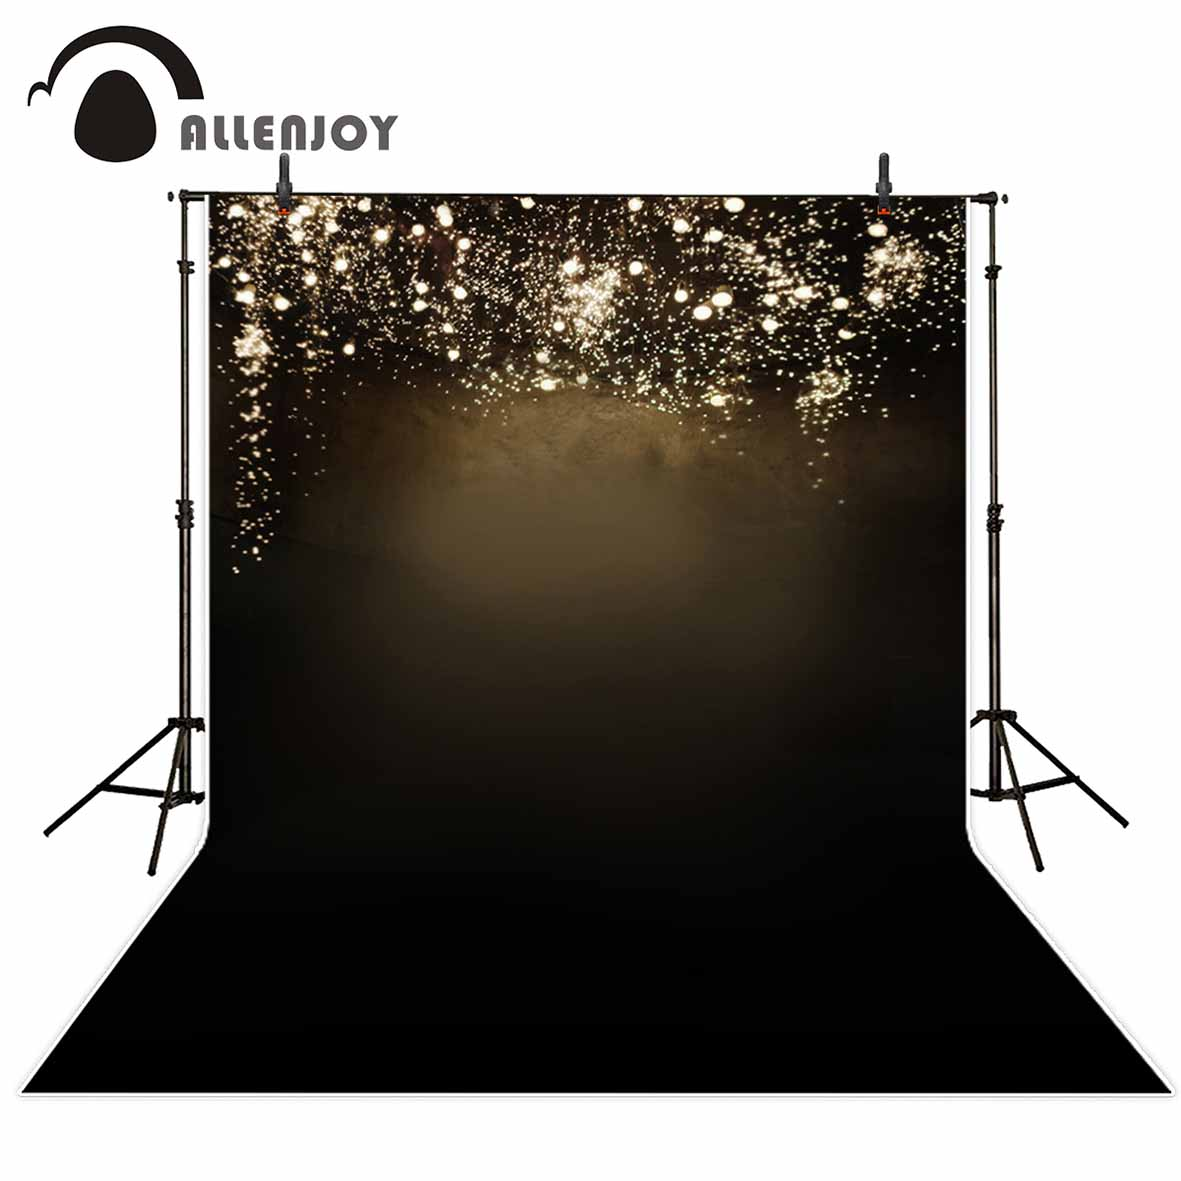 Allenjoy Shiny shimmer and shine background sparkling dots photography backdrops for a photo shoot for photo fund allenjoy christmas village decoration house amusement park foto for a photo shoot photographing background photography